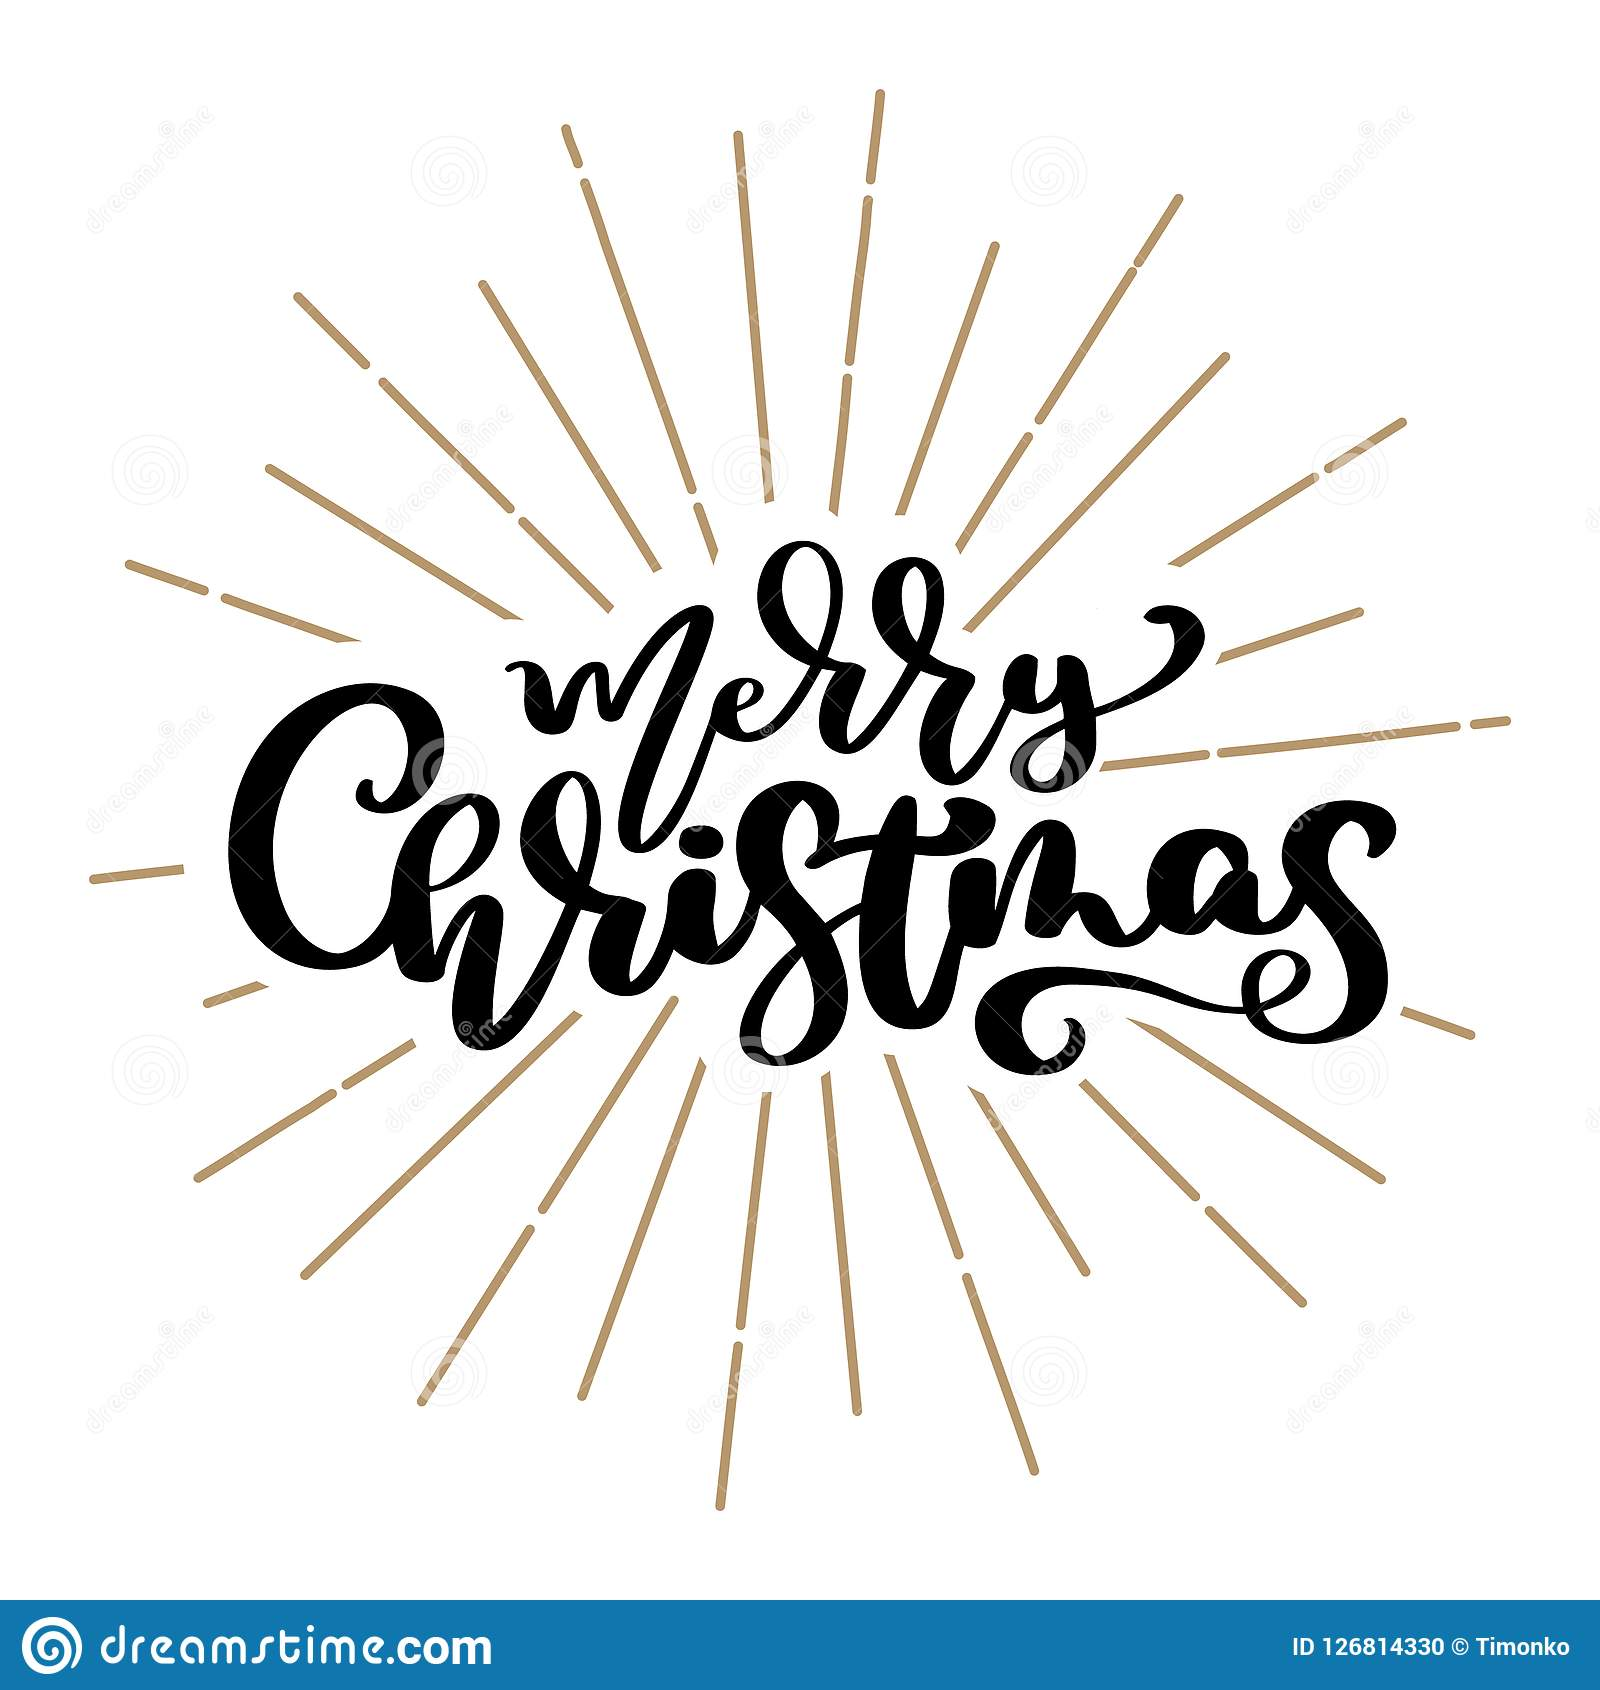 Merry Christmas Vector Text Calligraphic Lettering Design Card